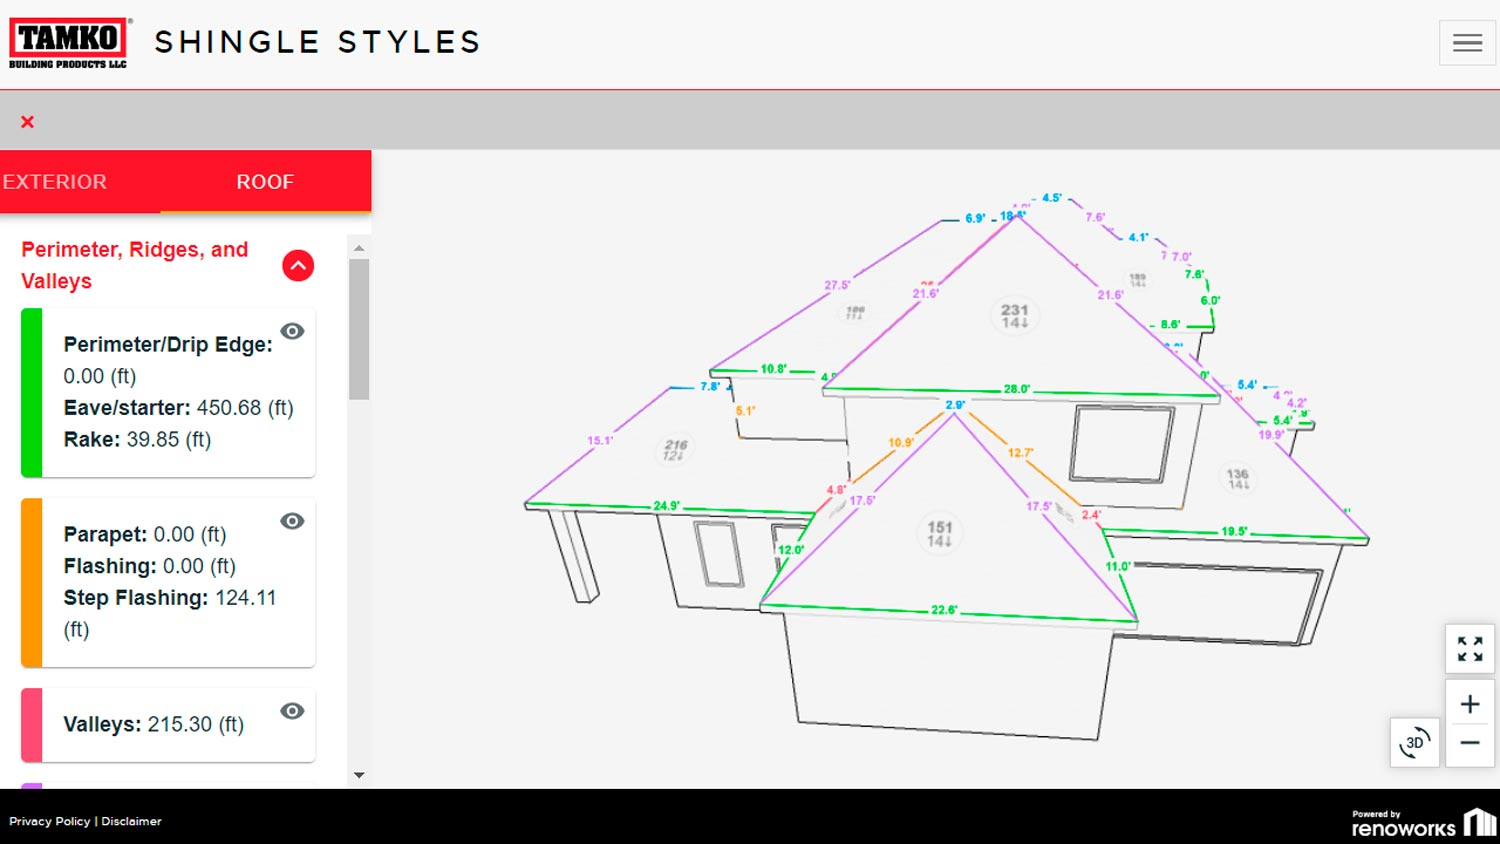 TAMKO Shingle Styles - Renoworks Visualizer (measurements)